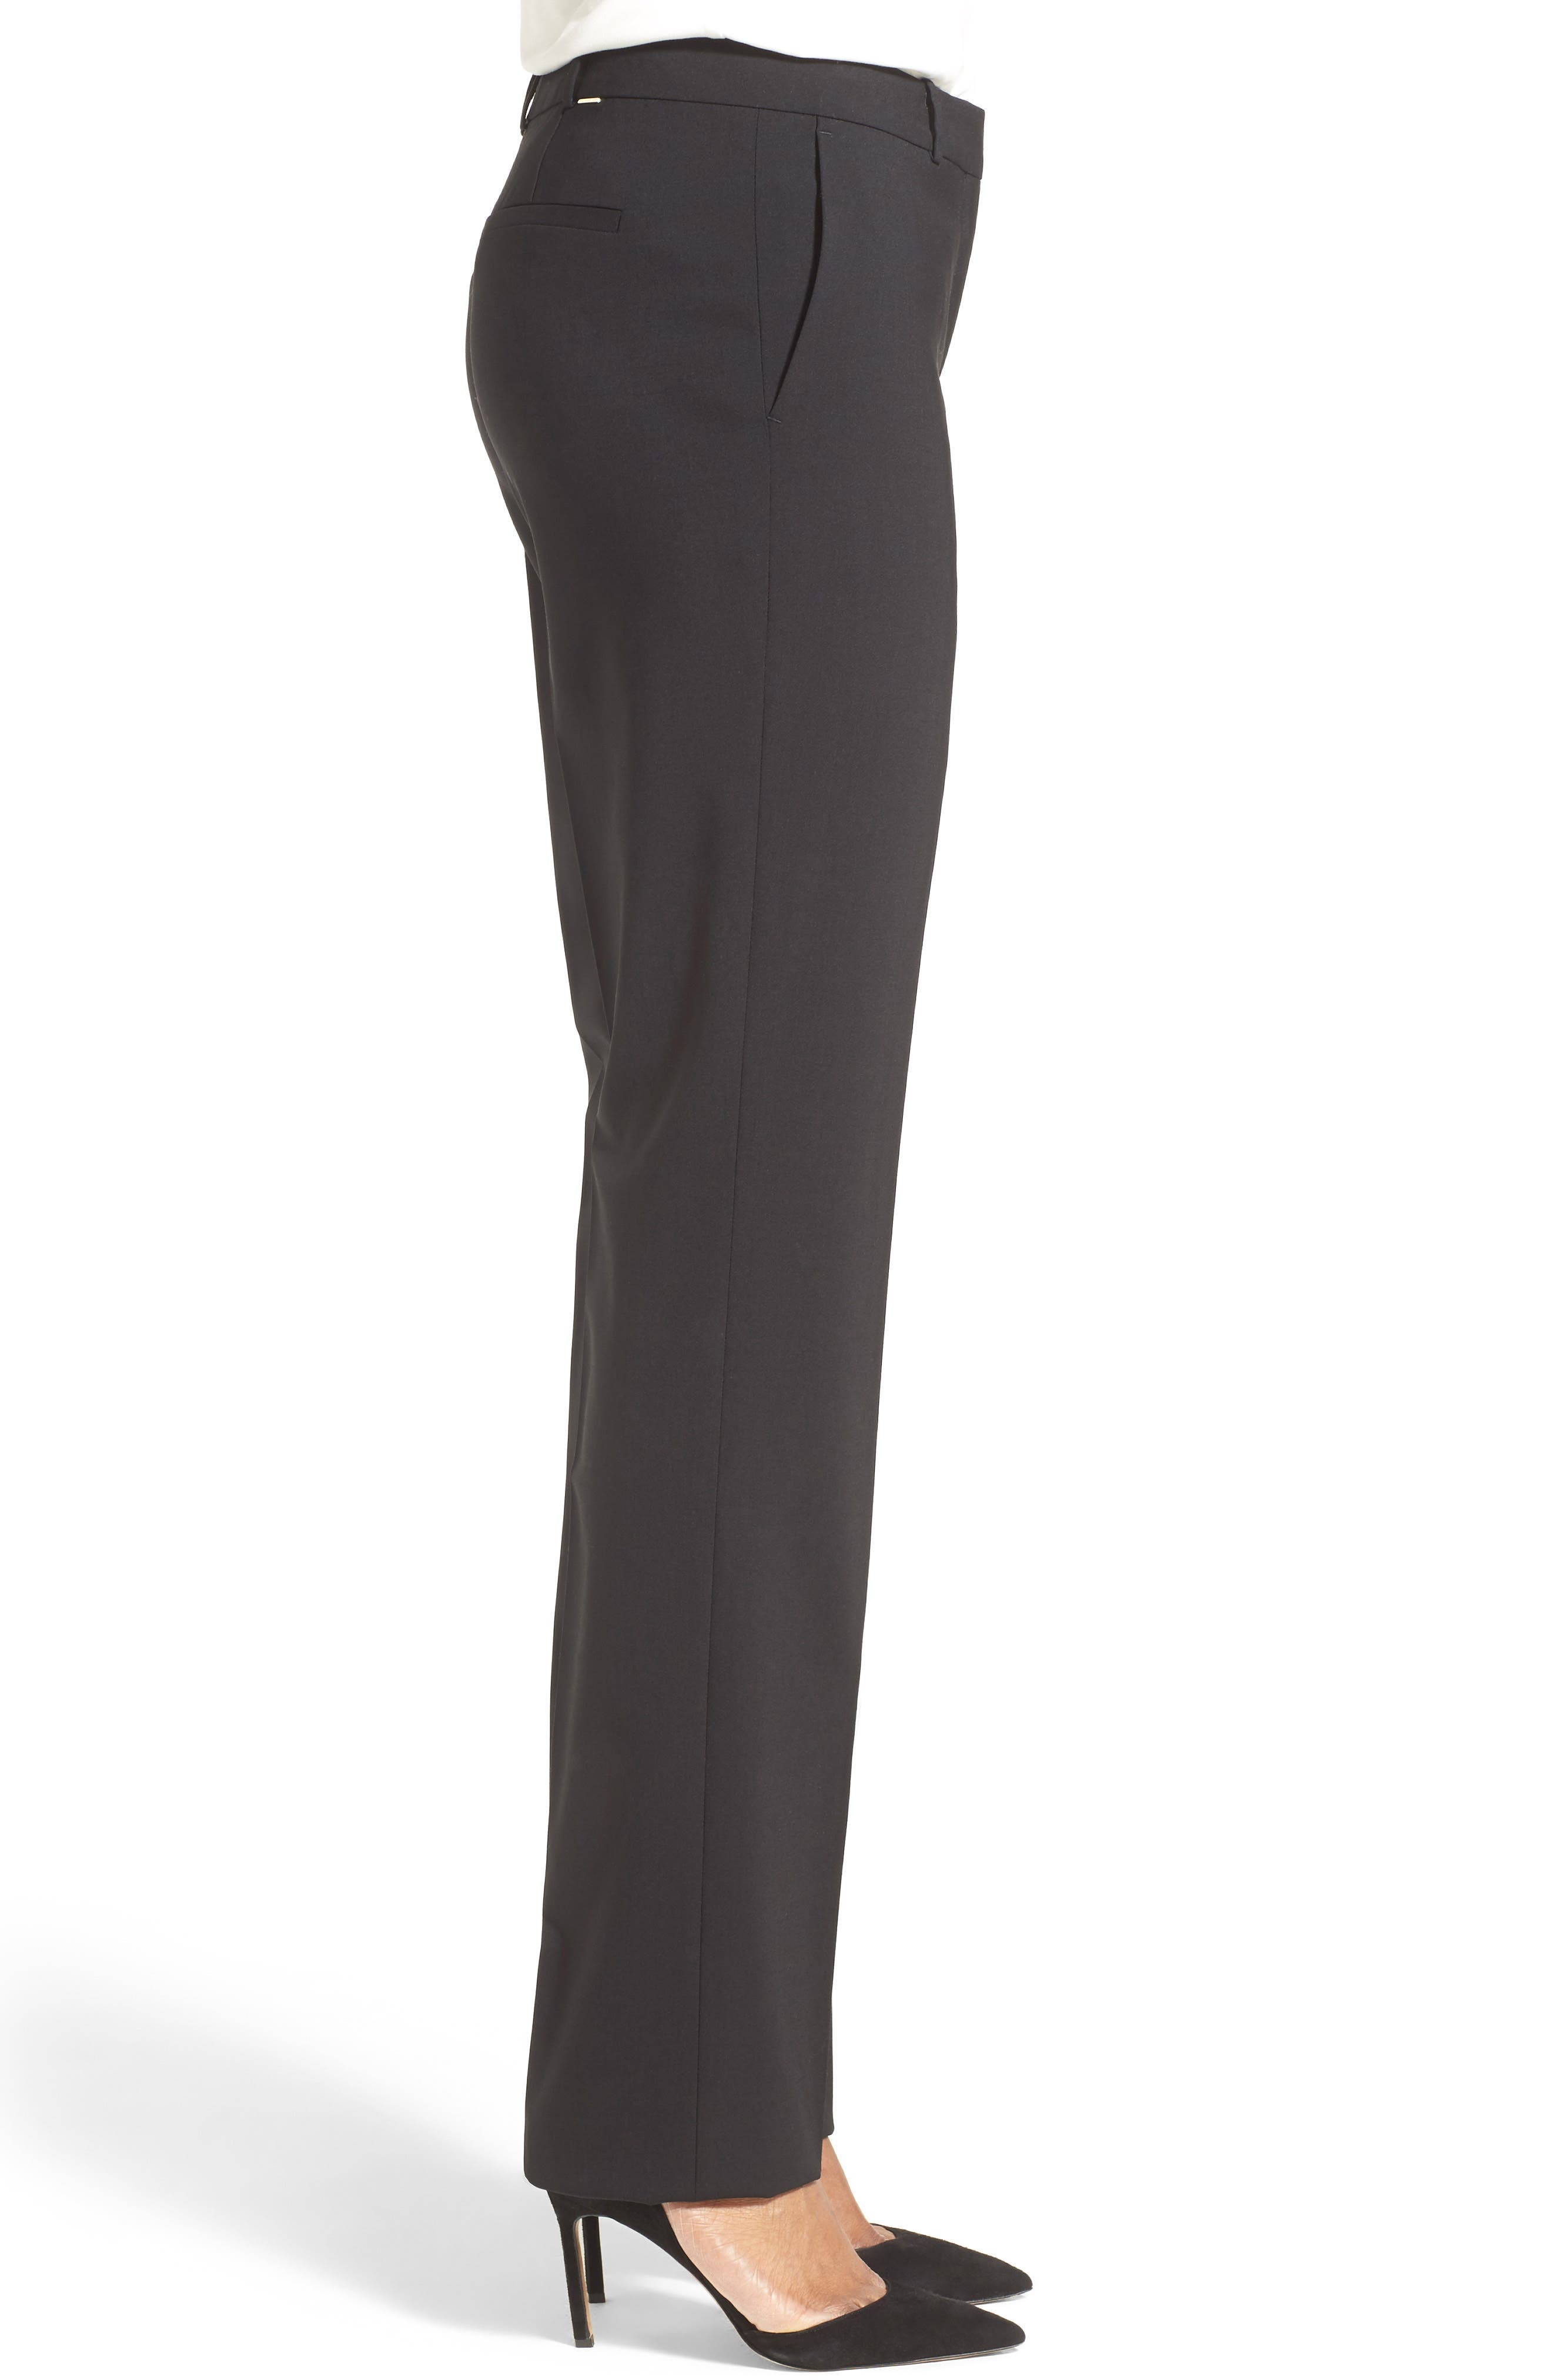 Tamea Tropical Stretch Wool Trousers,                             Alternate thumbnail 3, color,                             BLACK